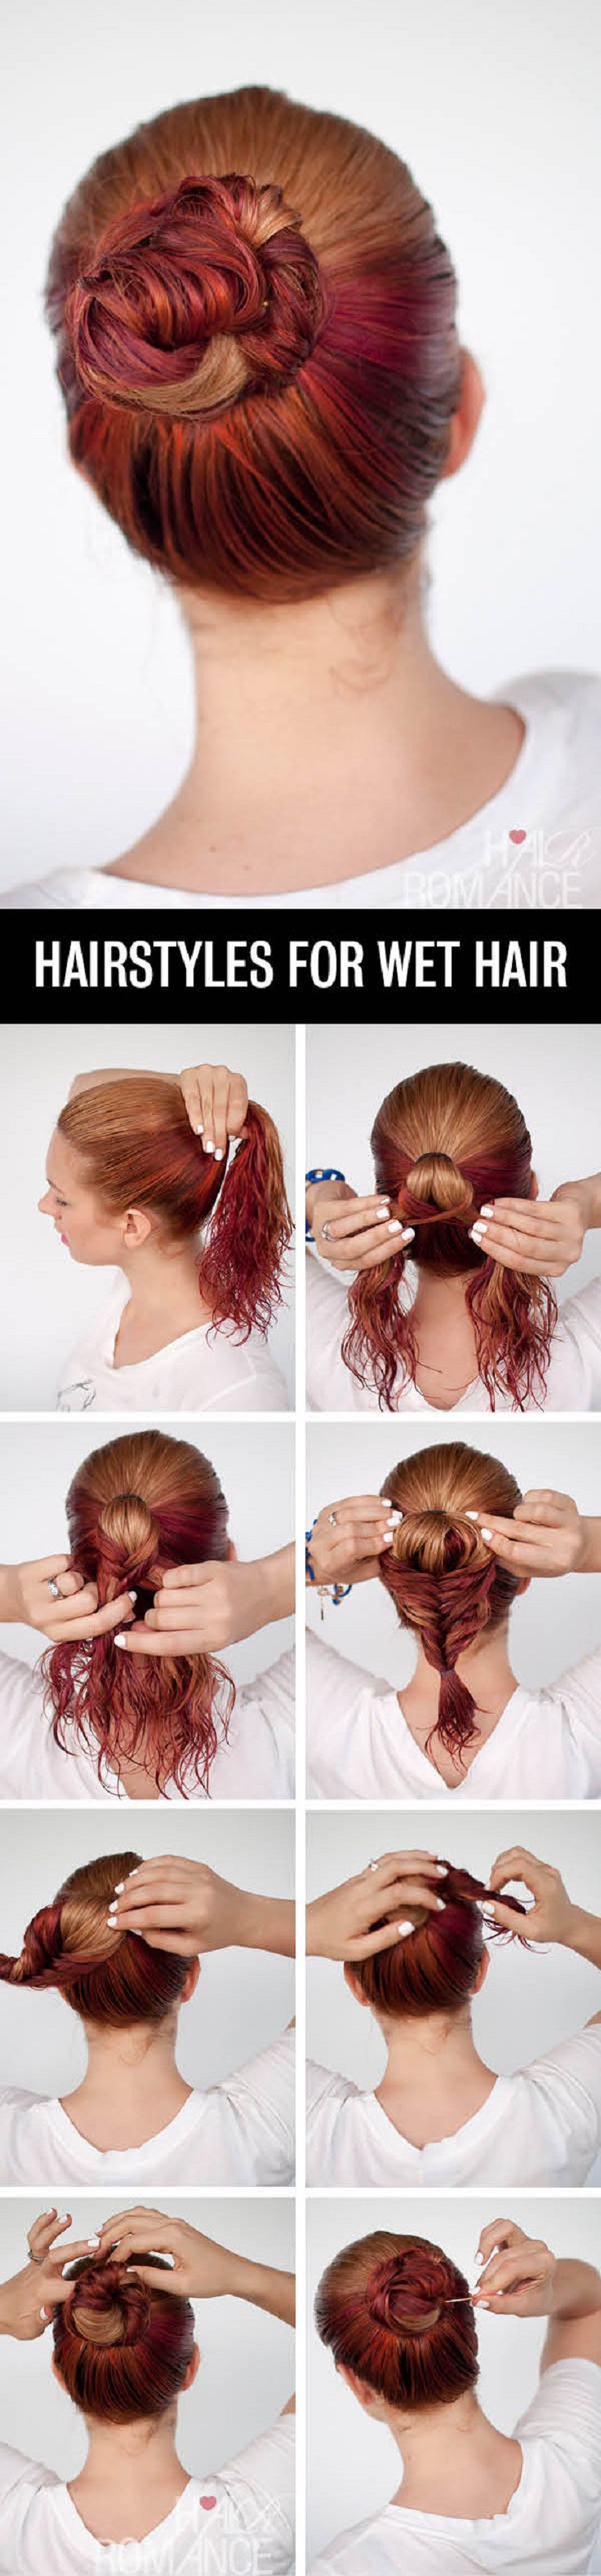 Best ideas about Easy Hairstyles For Wet Hair . Save or Pin Top 10 Fast Hairstyles For Wet Hair Top Inspired Now.